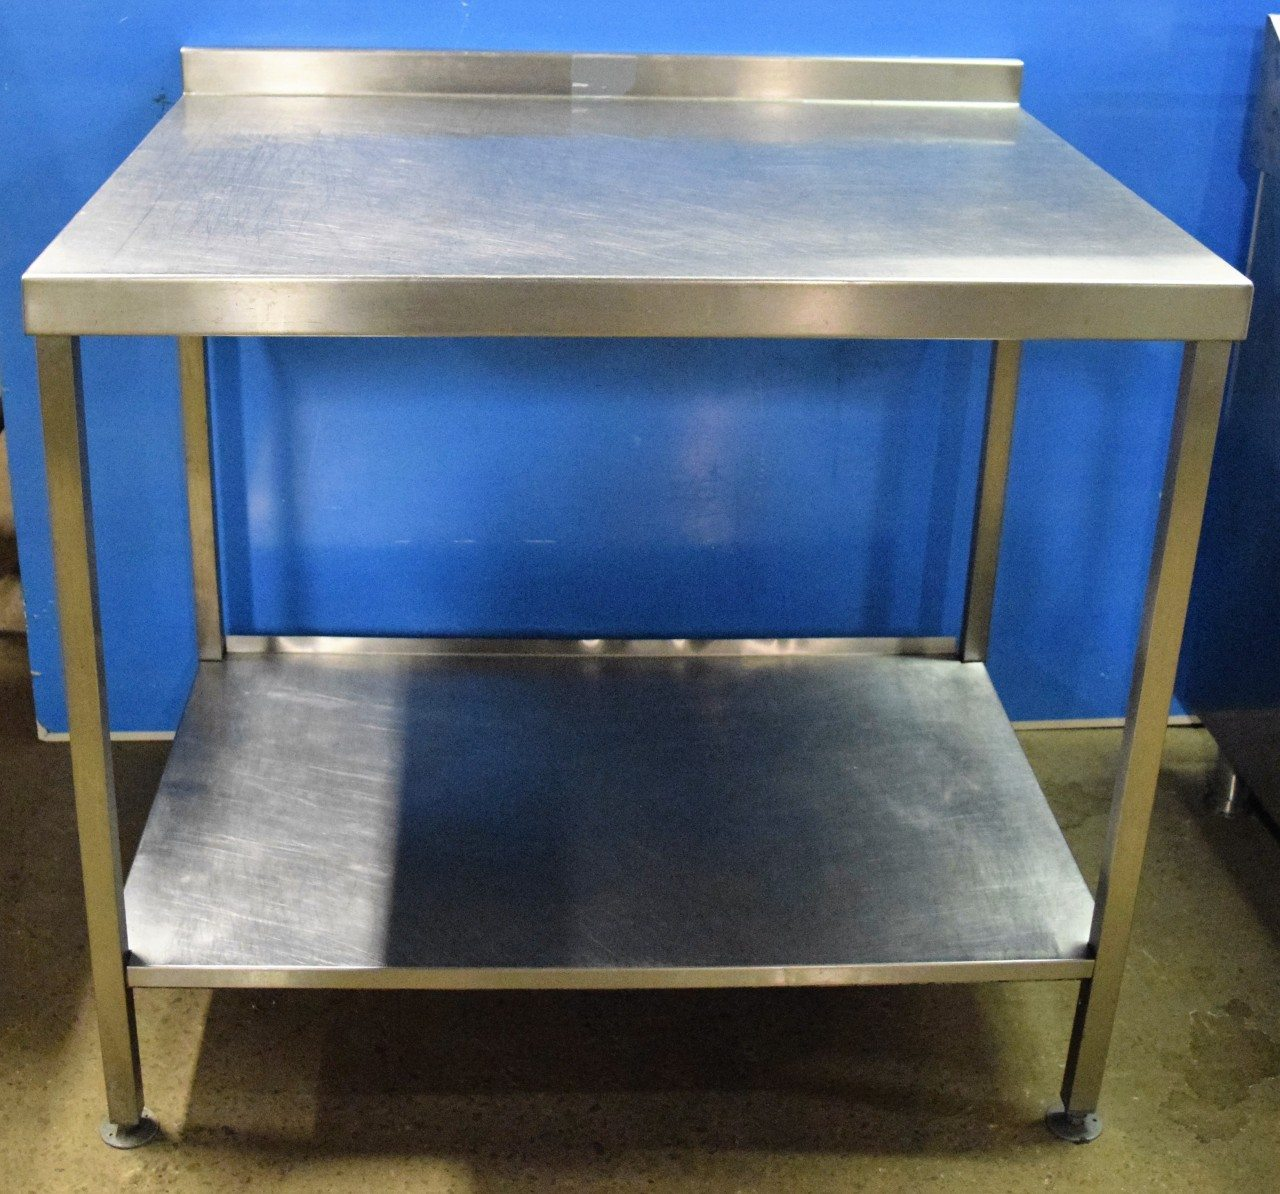 STAINLESS STEEL  Table with Undershelf 100cm x 80cm